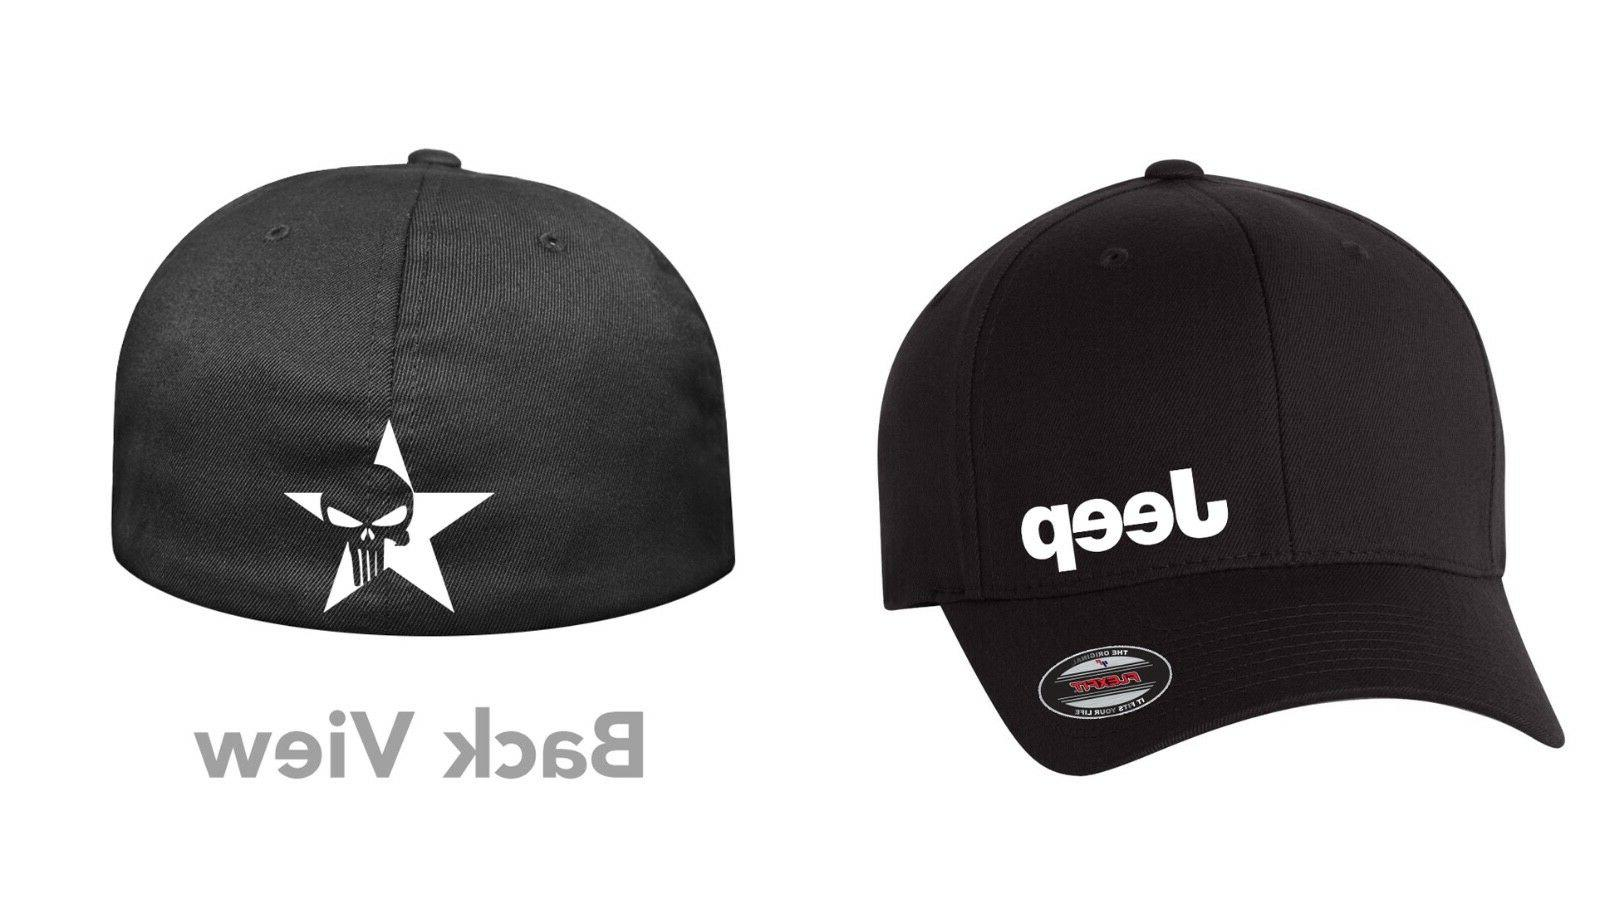 skull jeep flex fit hat curved or